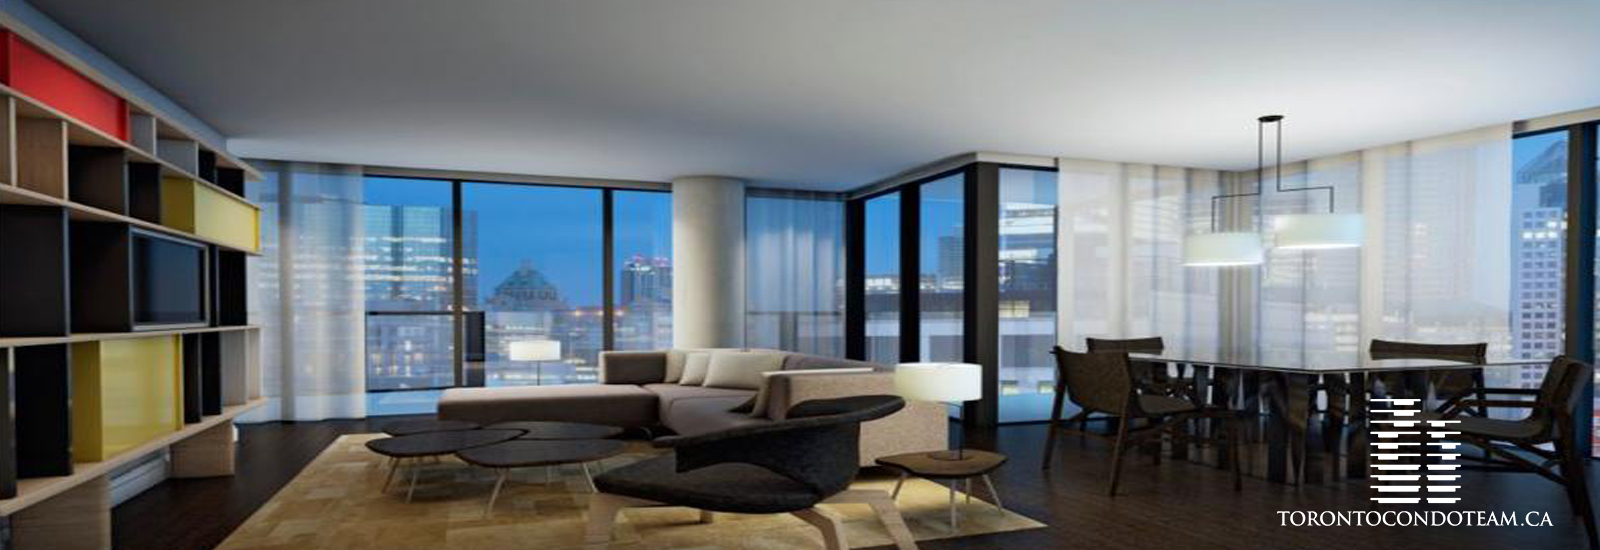 15 Beverley Street Condos For Sale